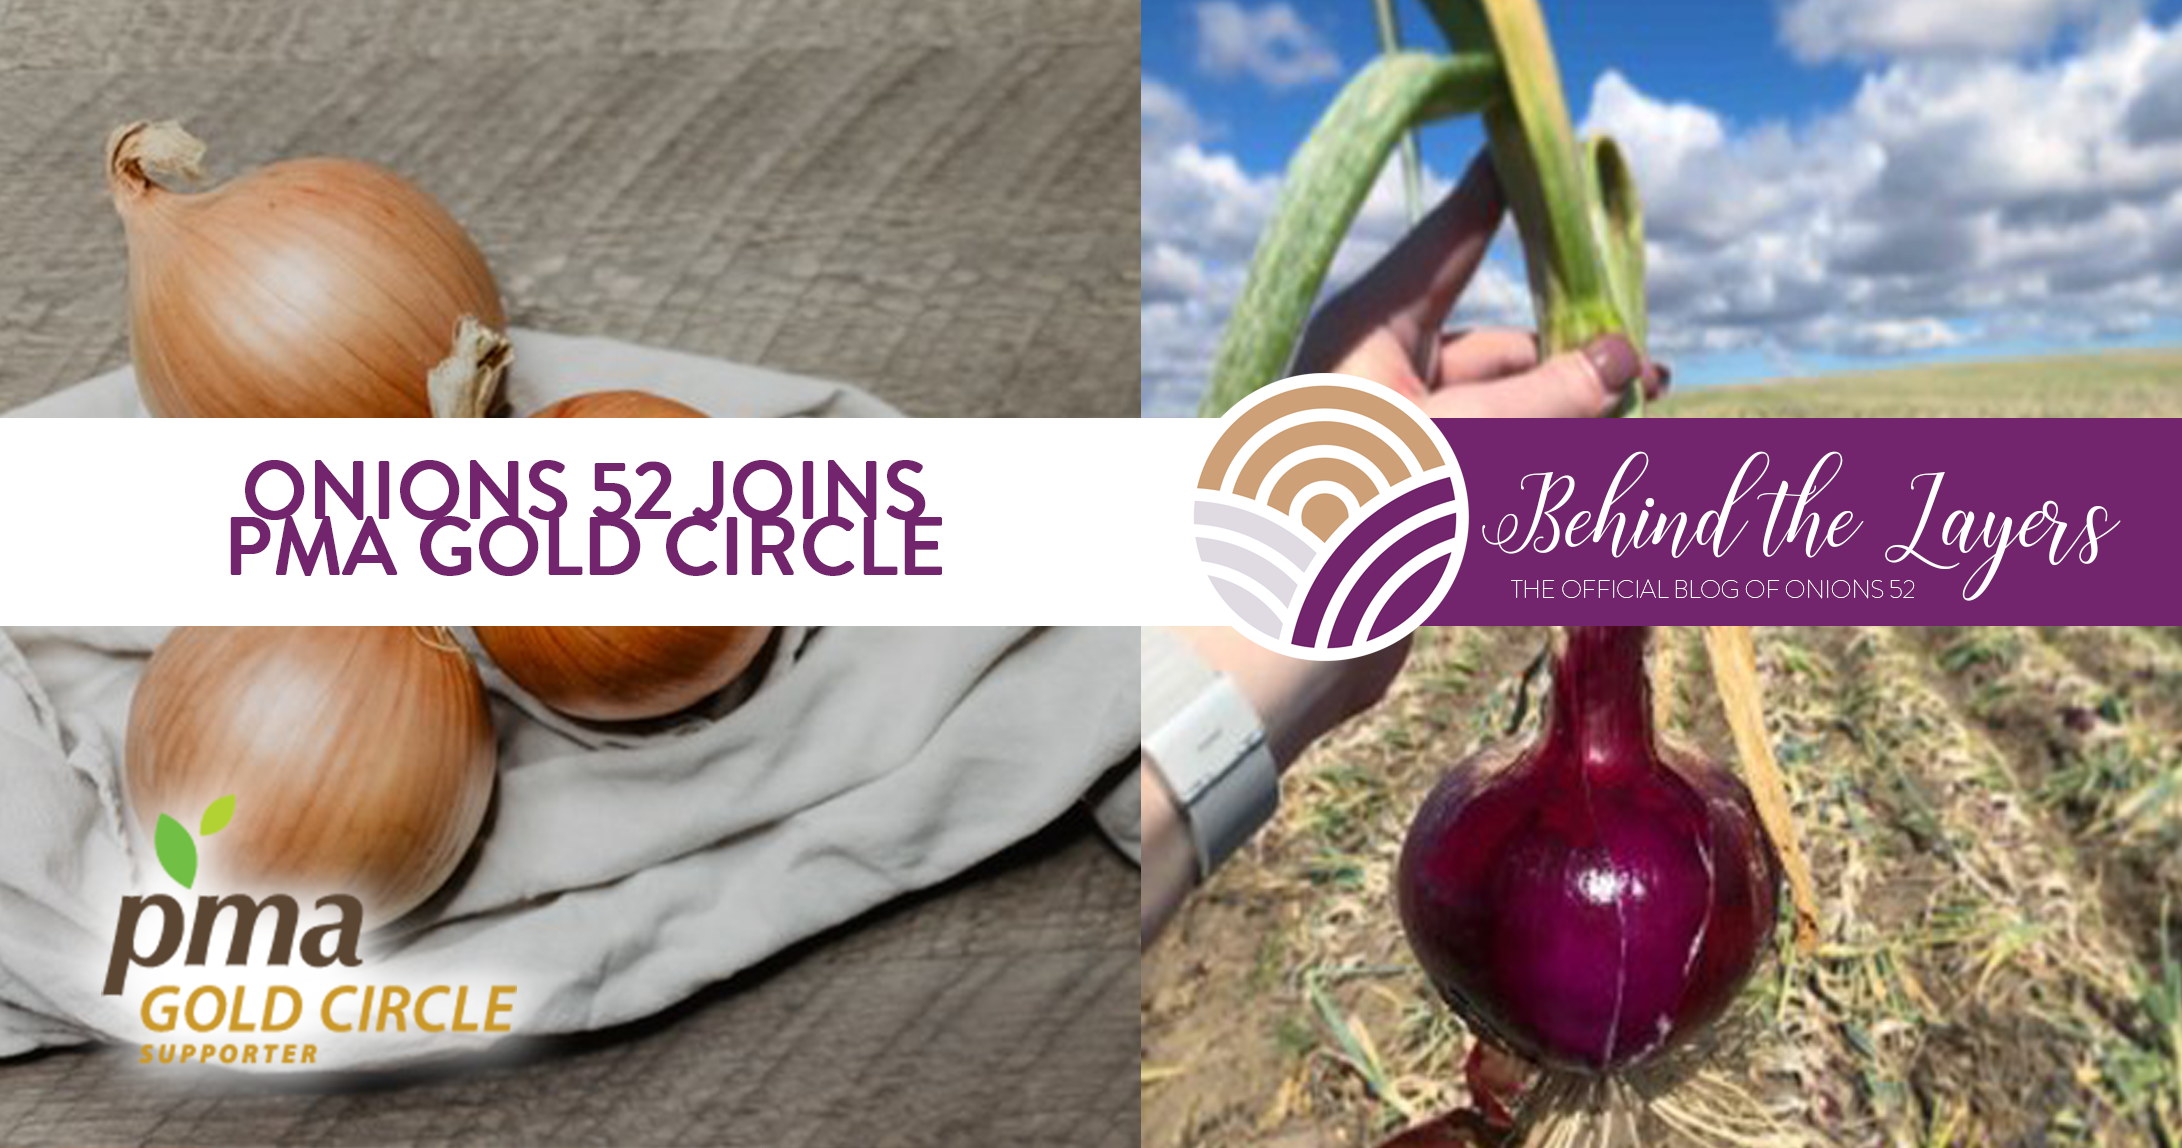 Onions 52 Joins PMA Gold Circle Campaign For Food Safety